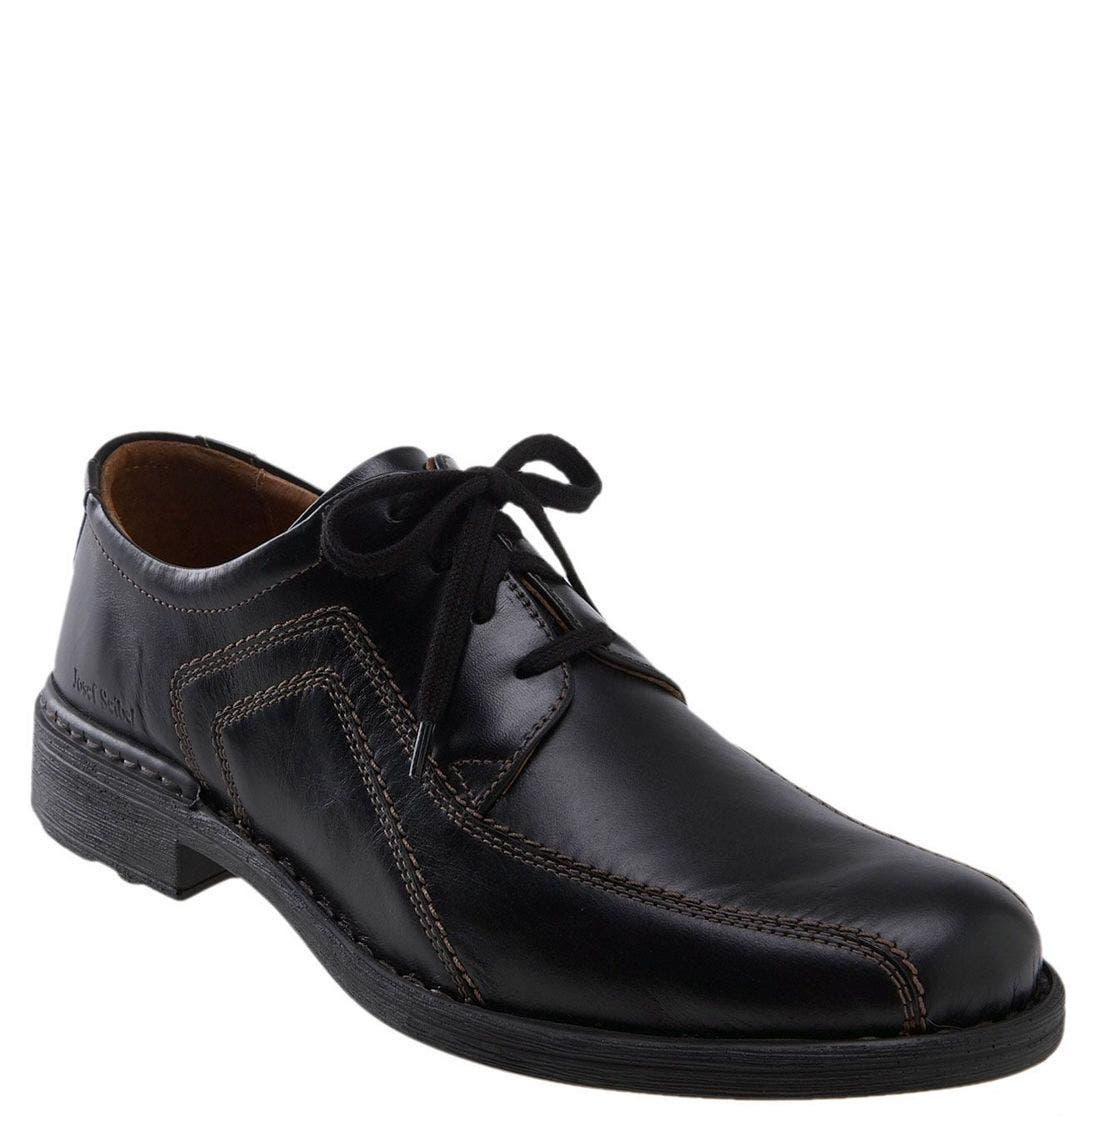 Main Image - Josef Seibel 'Sander' Oxford